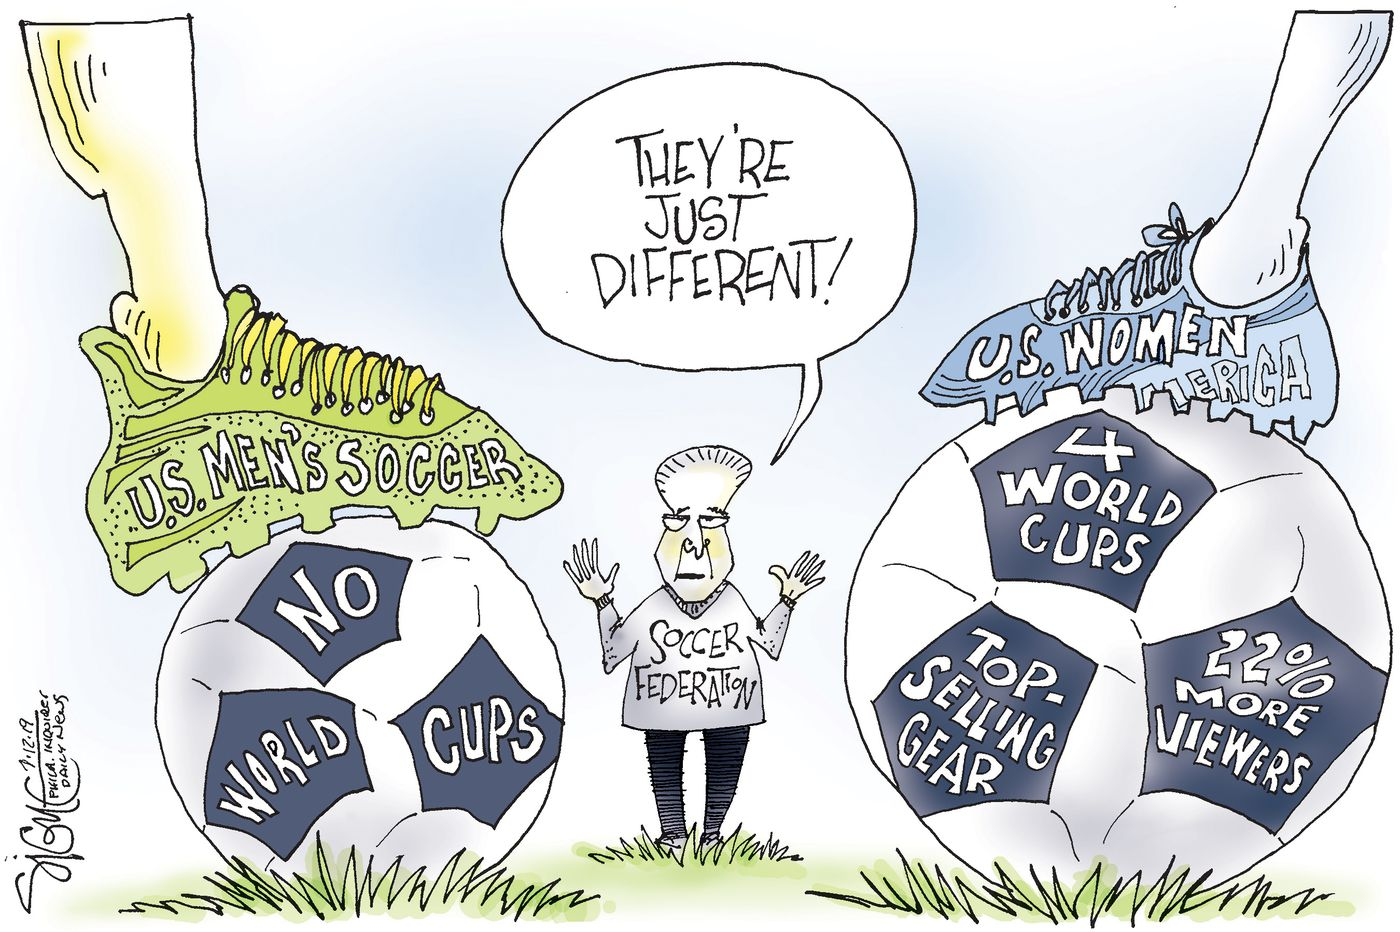 Political Cartoon: Women's soccer is just different from the men's